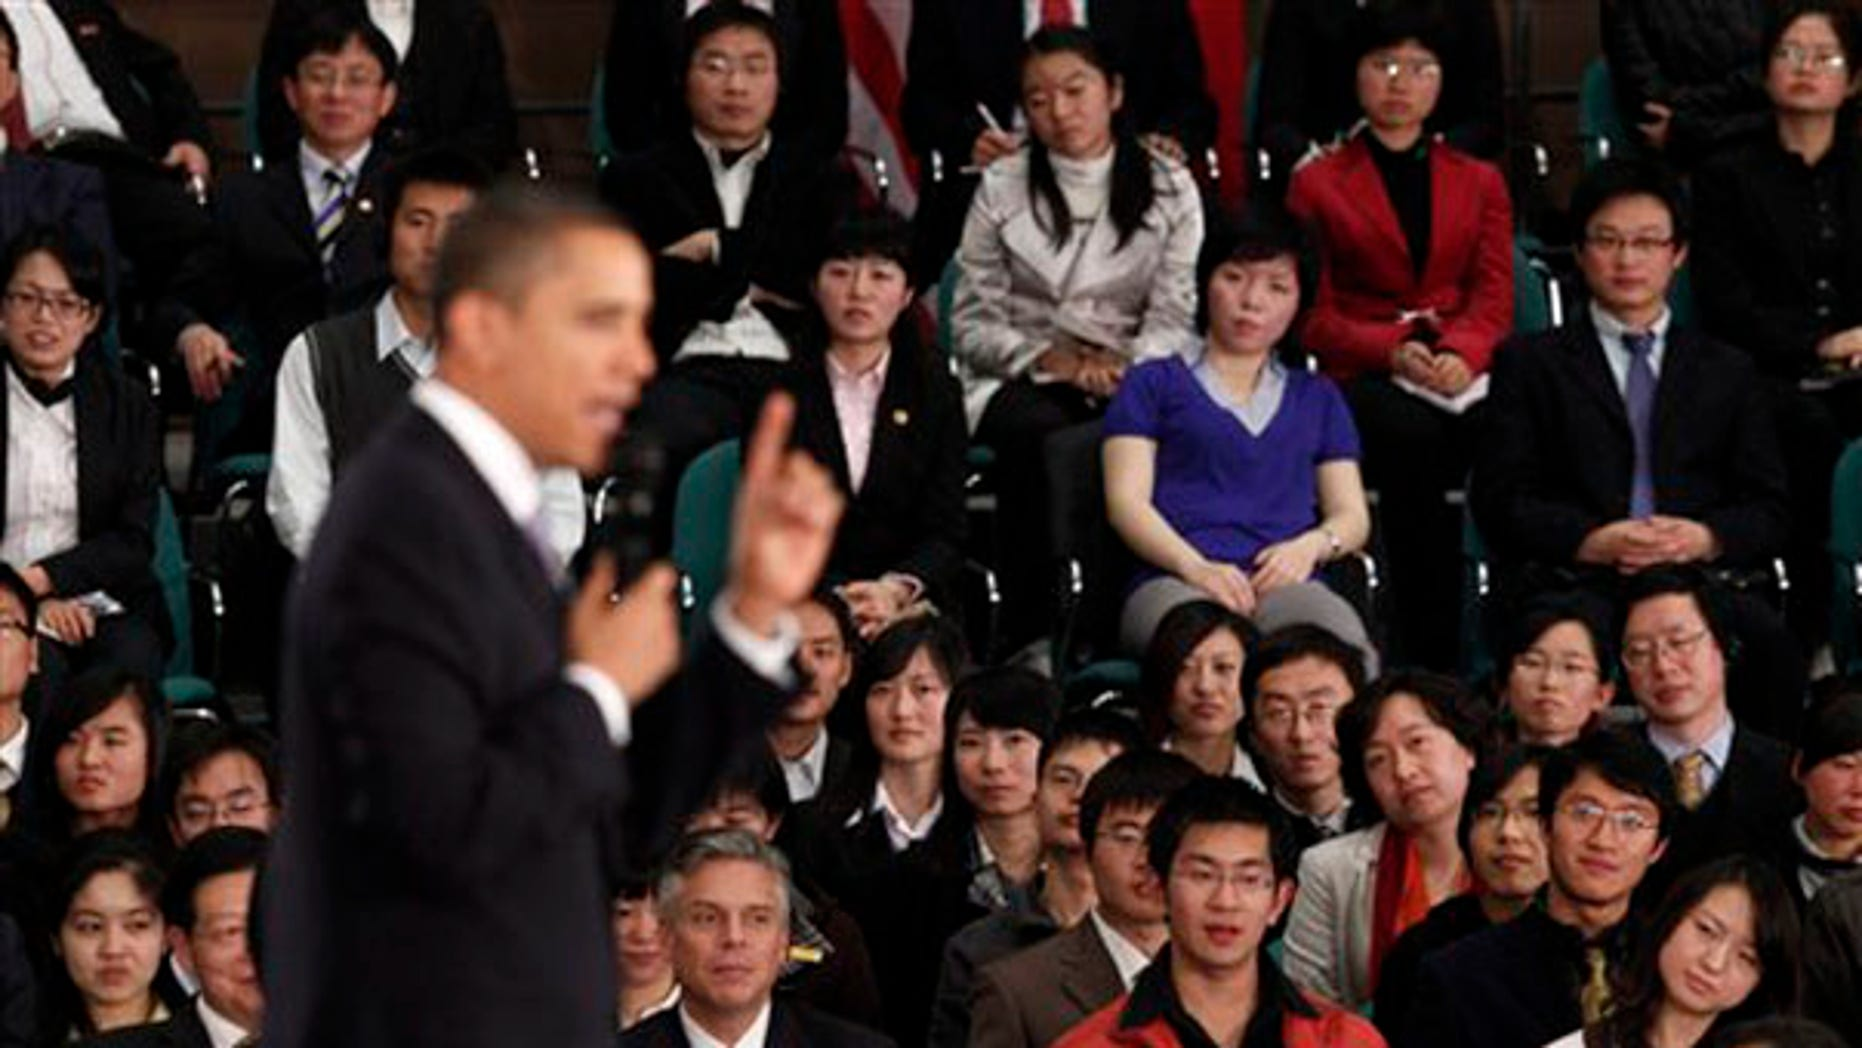 Monday: President Obama speaks at a town hall style event with Chinese youth at the Museum of Science and Technology in Shanghai, China. (AP Photo)